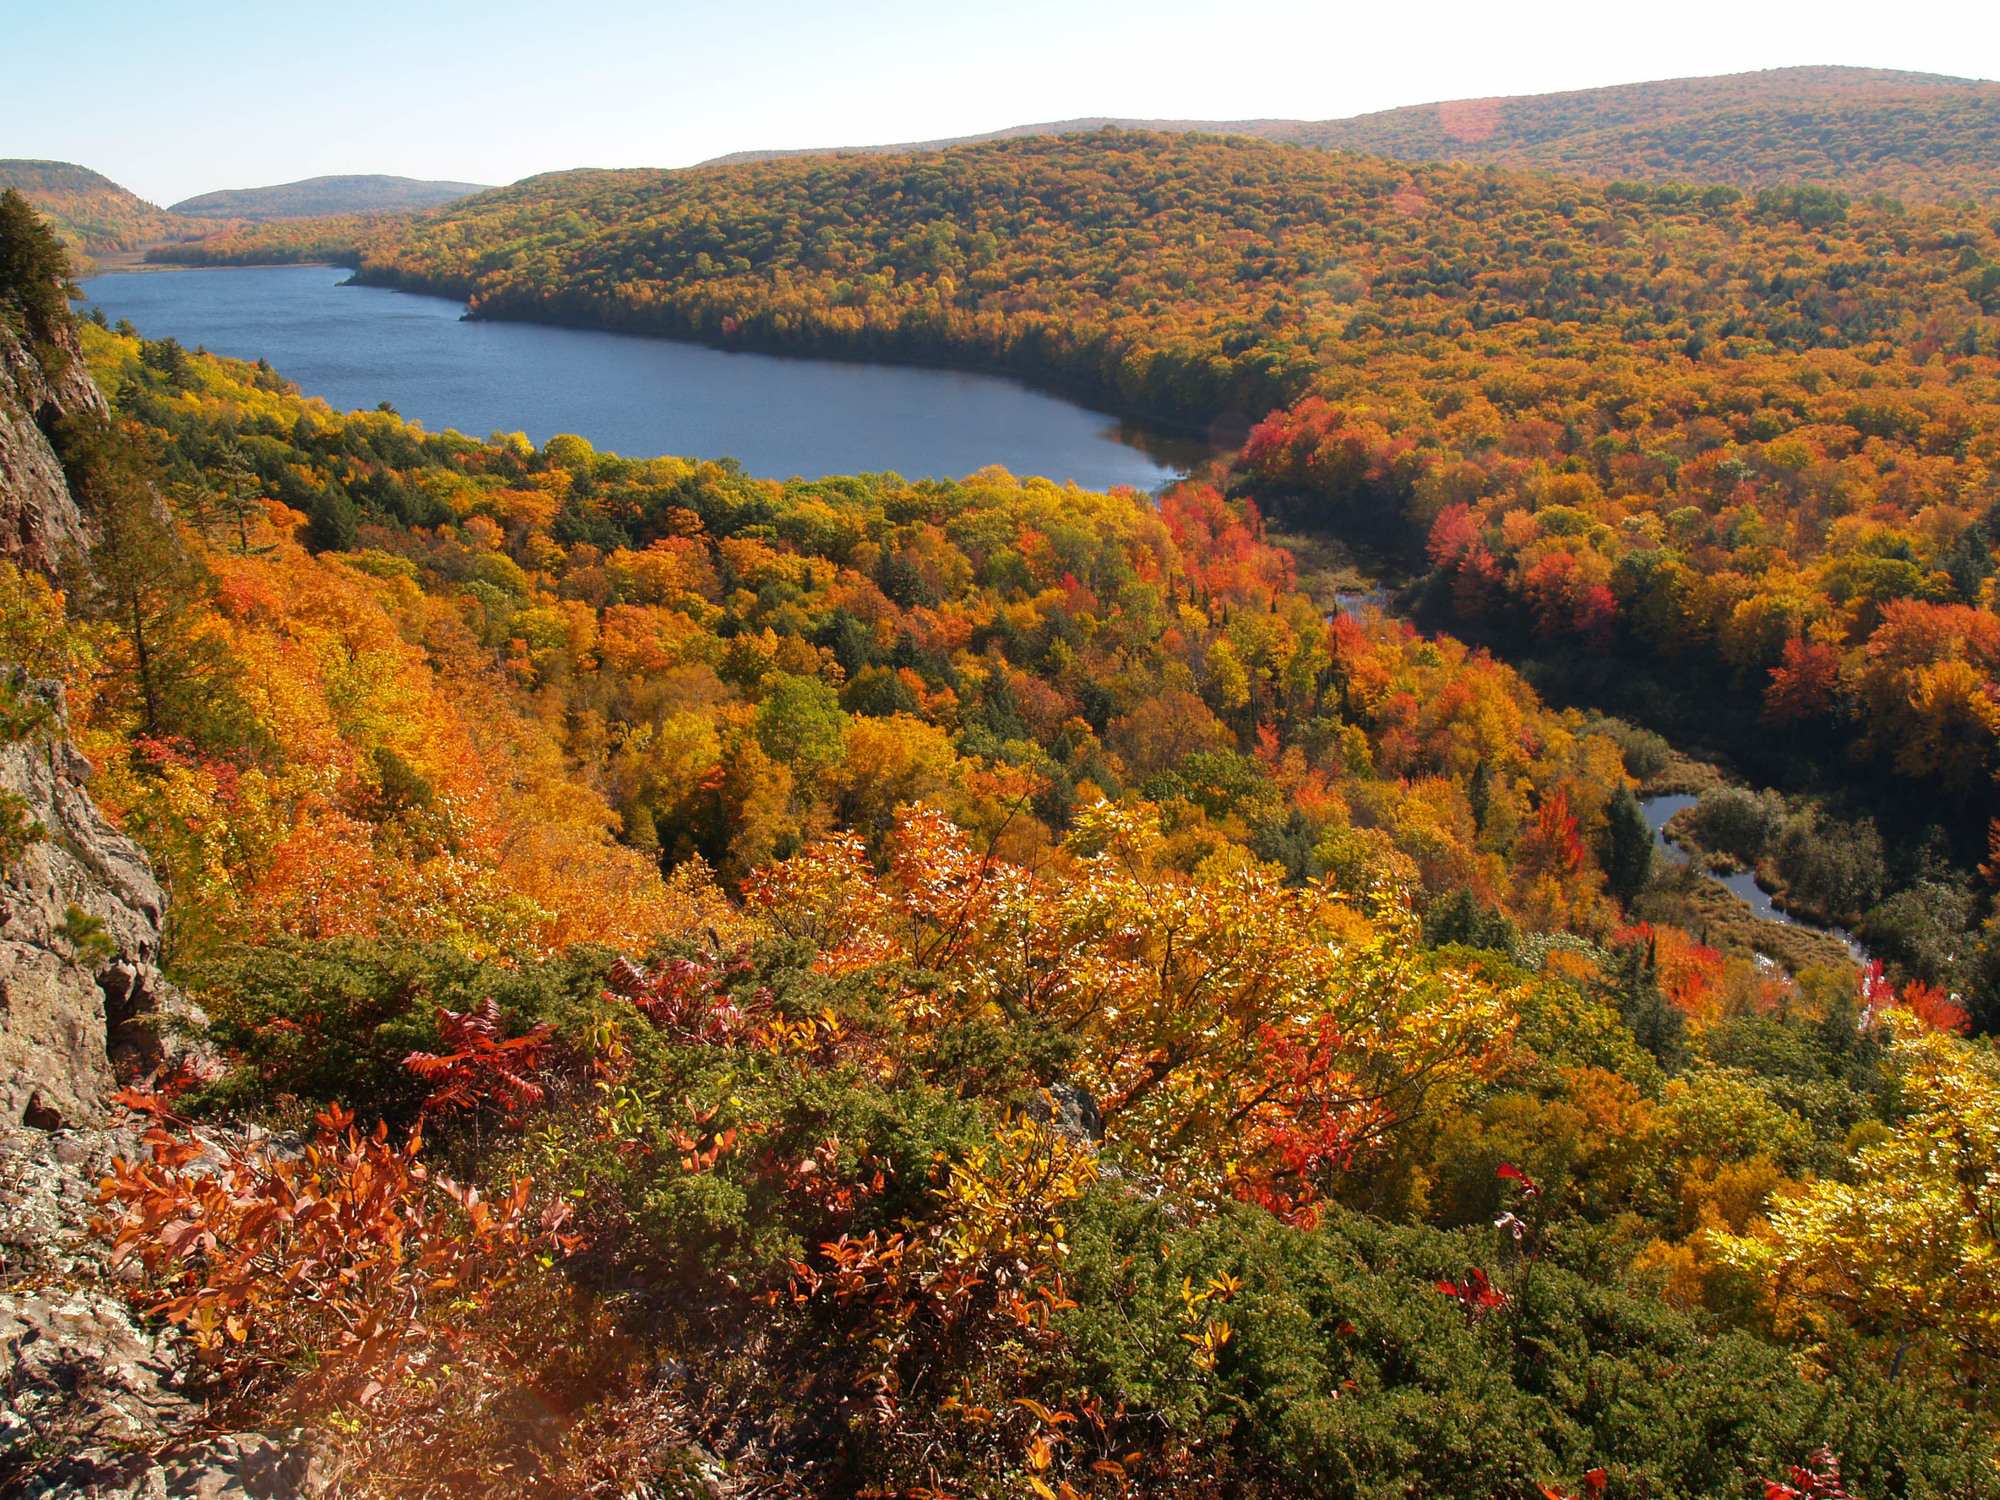 Deciduous forests produce fall color displays sought by a wide range of leaf peepers from Michigan and out of state.